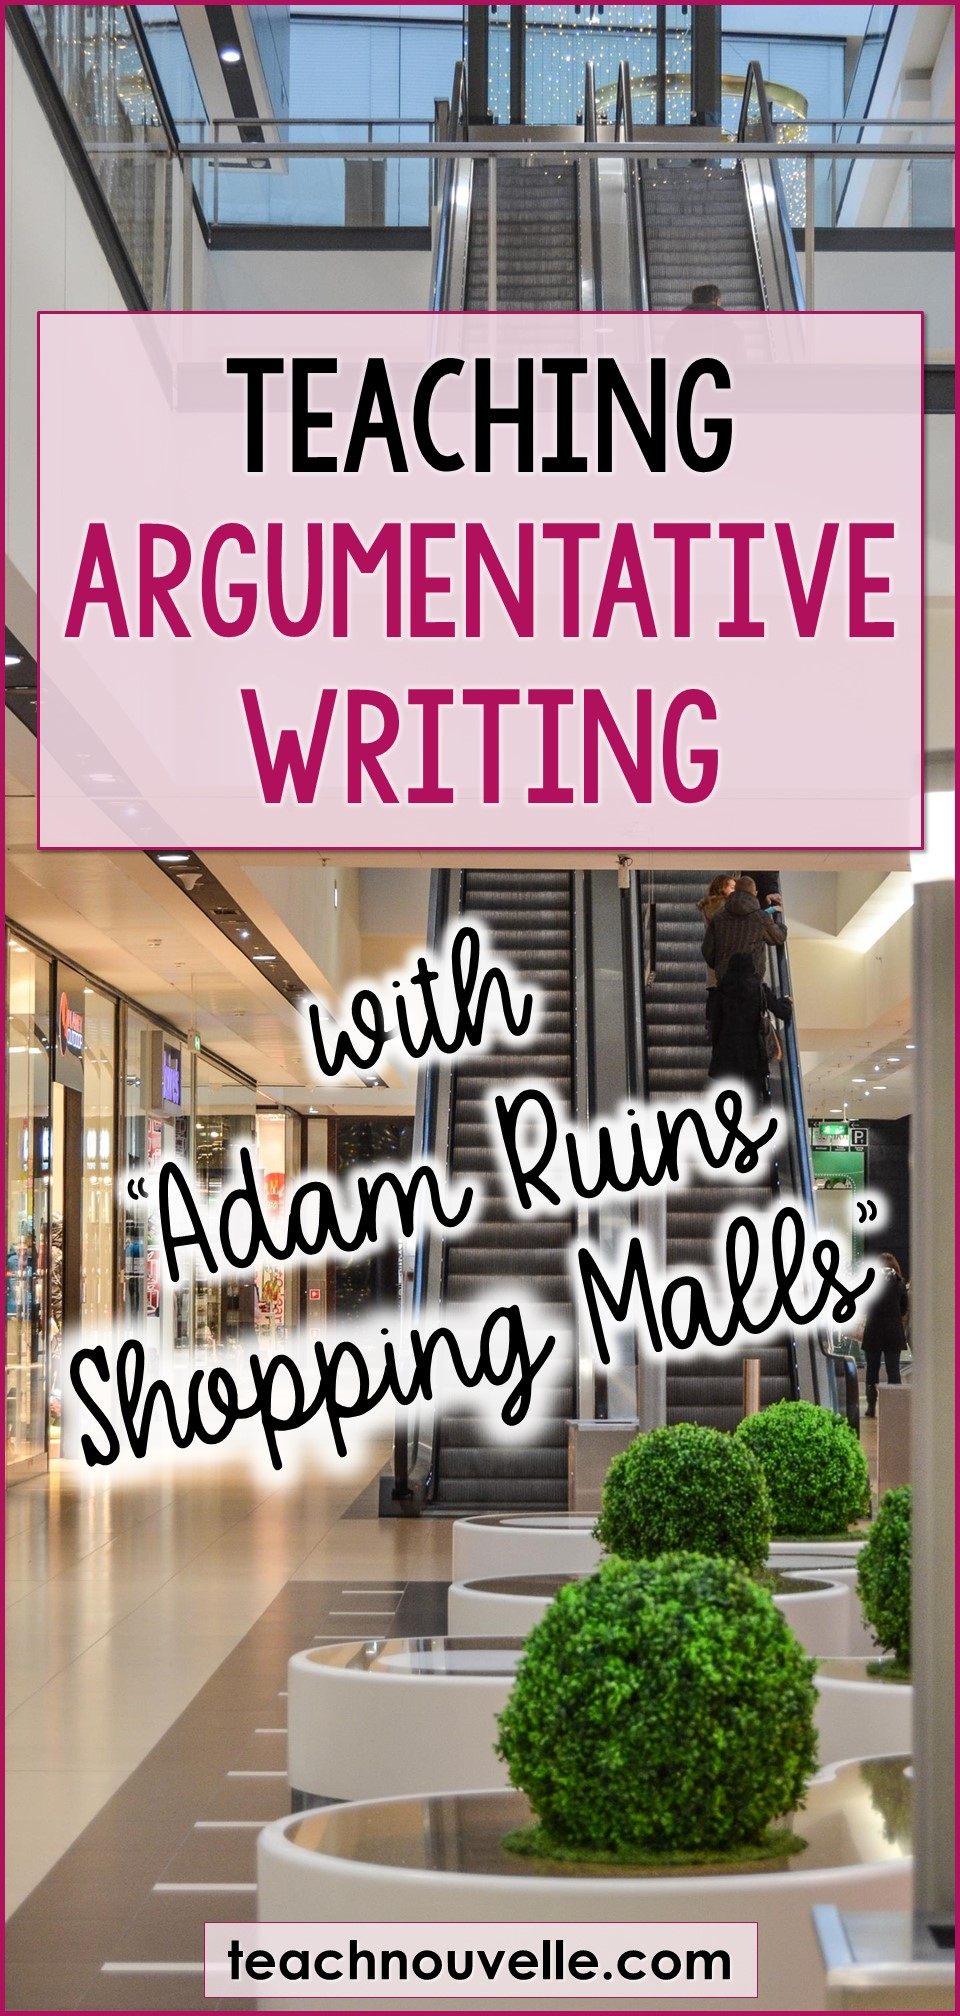 Teaching Argumentative Writing with Adam Ruins Everything pin